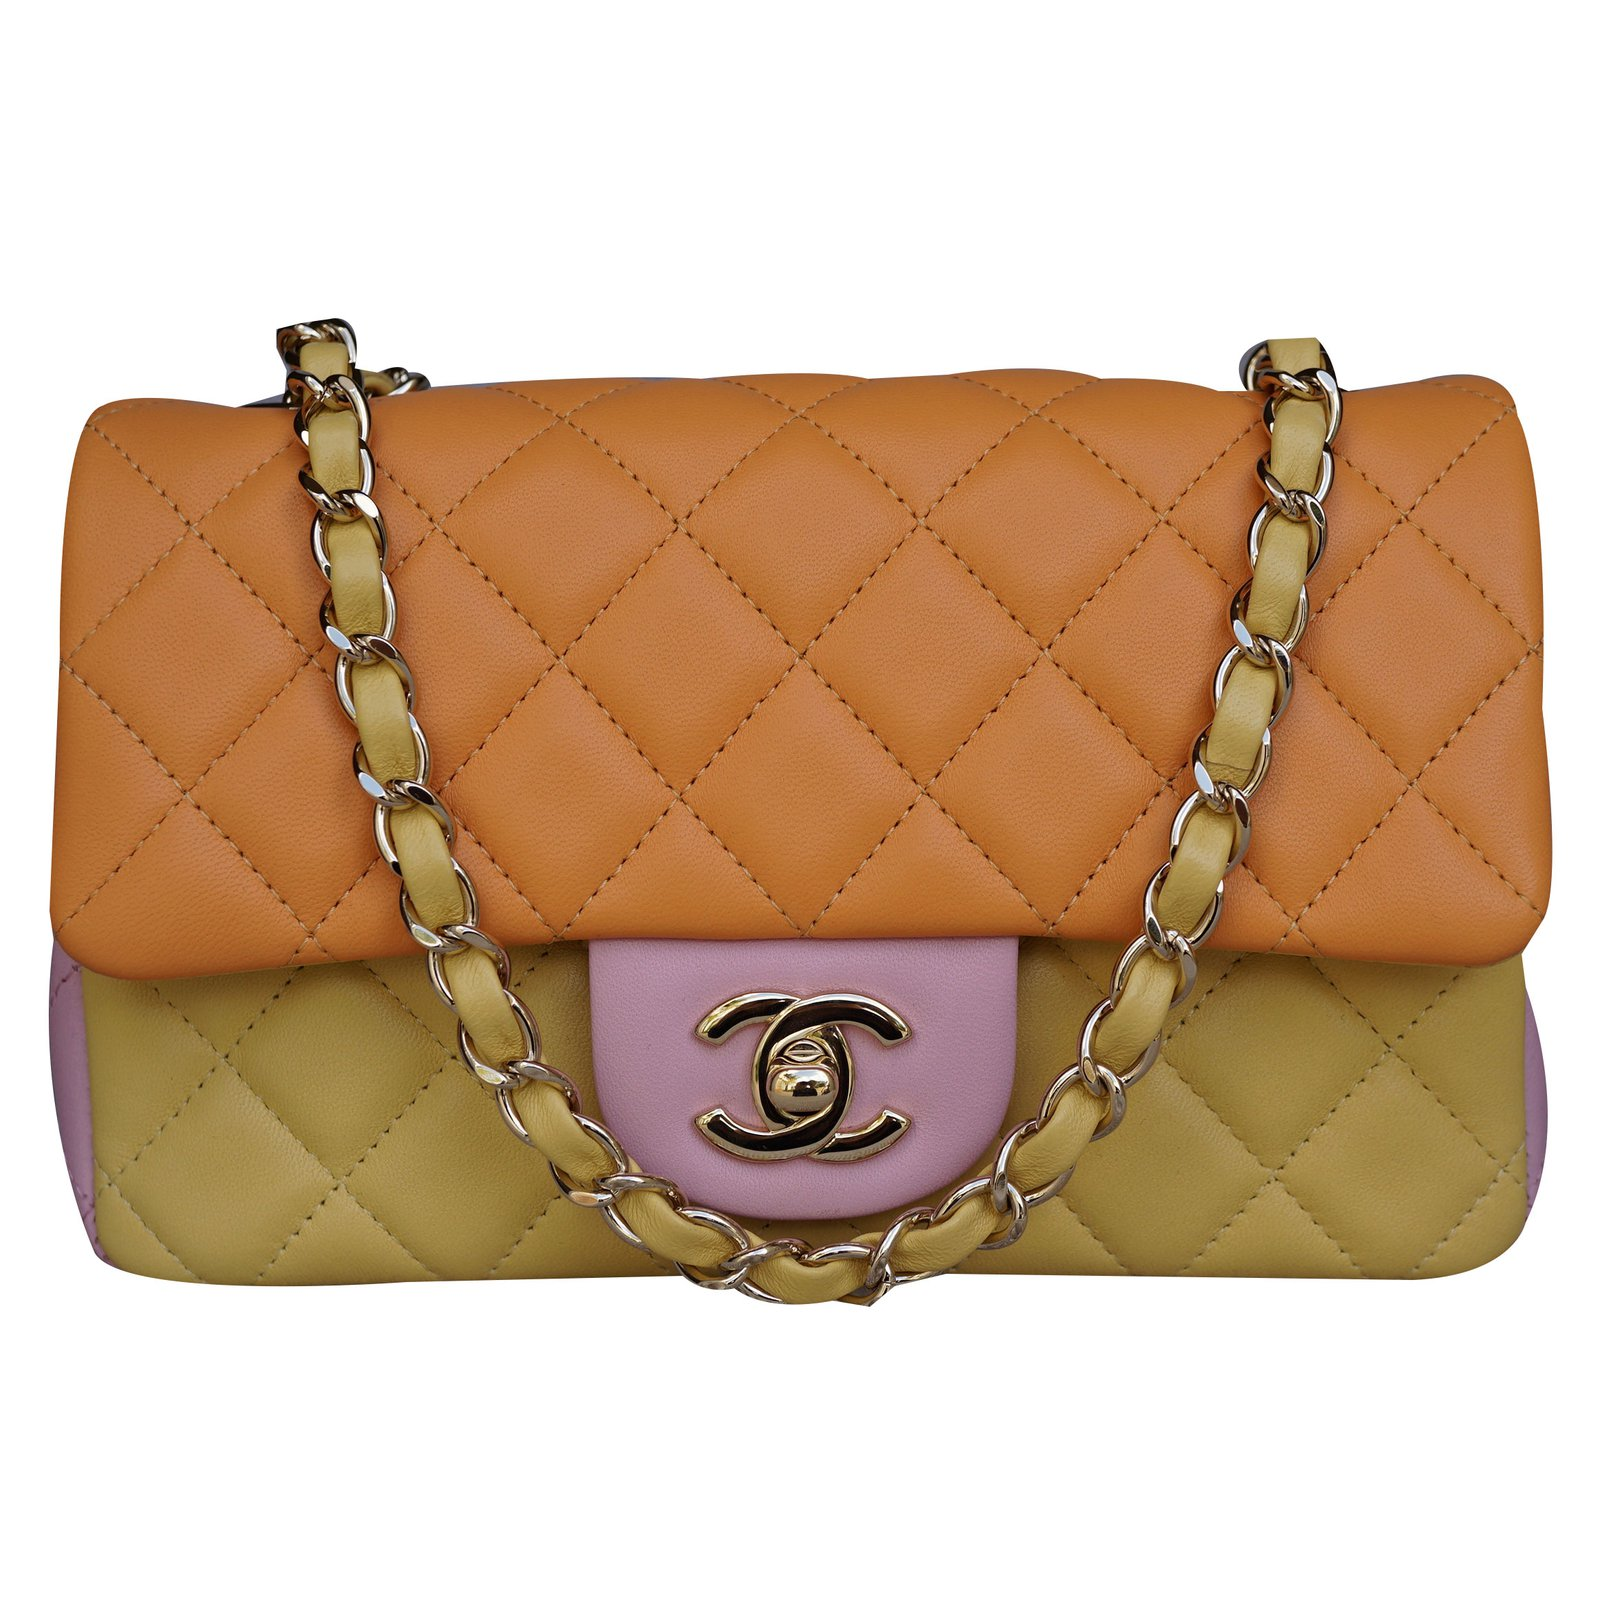 e319efd6a39527 Chanel Tri-Colors Lambskin Mini Flap Bag with Shiny Gold chain Handbags  Leather Multiple colors